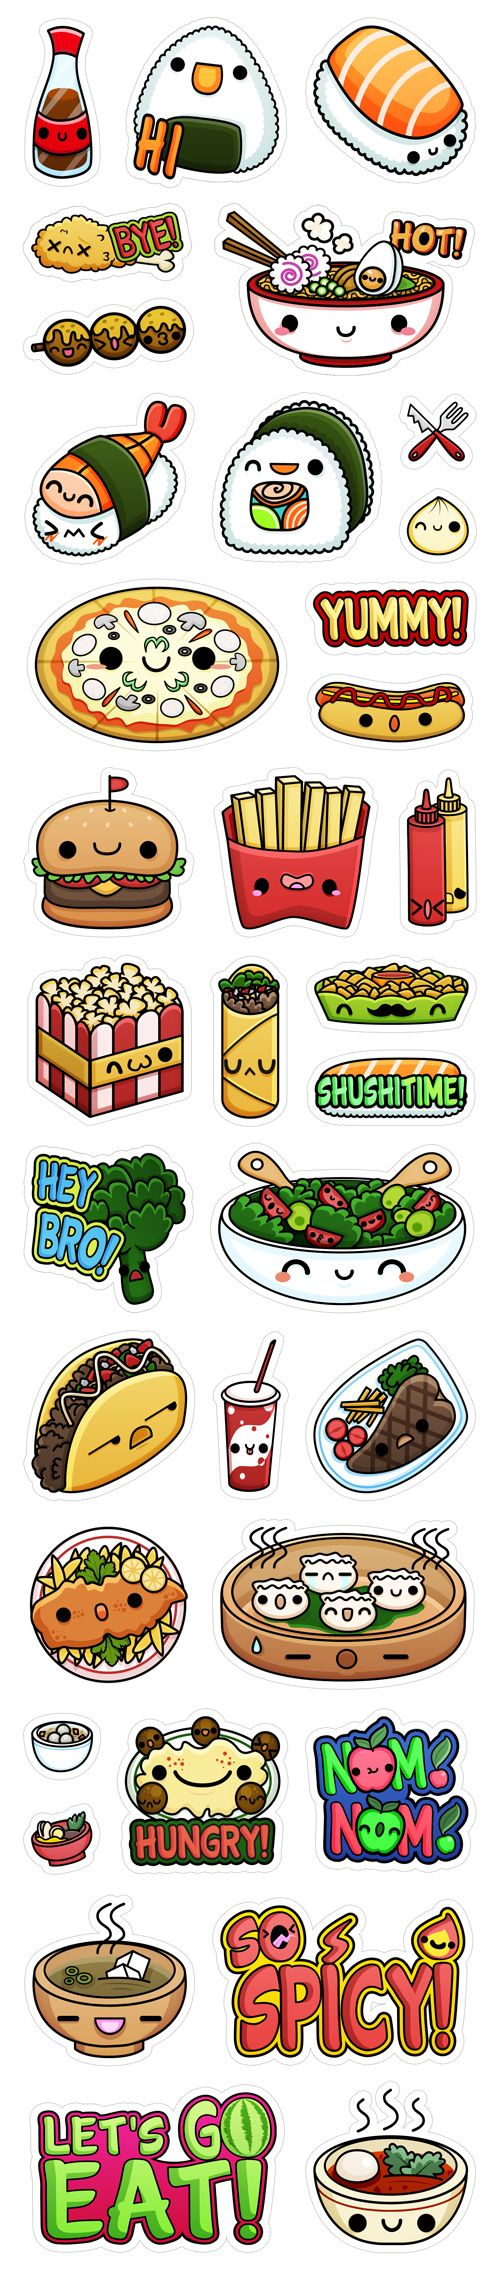 Viber's Kawaii Food Stickers by Squid and Pig www.squidandpig.com